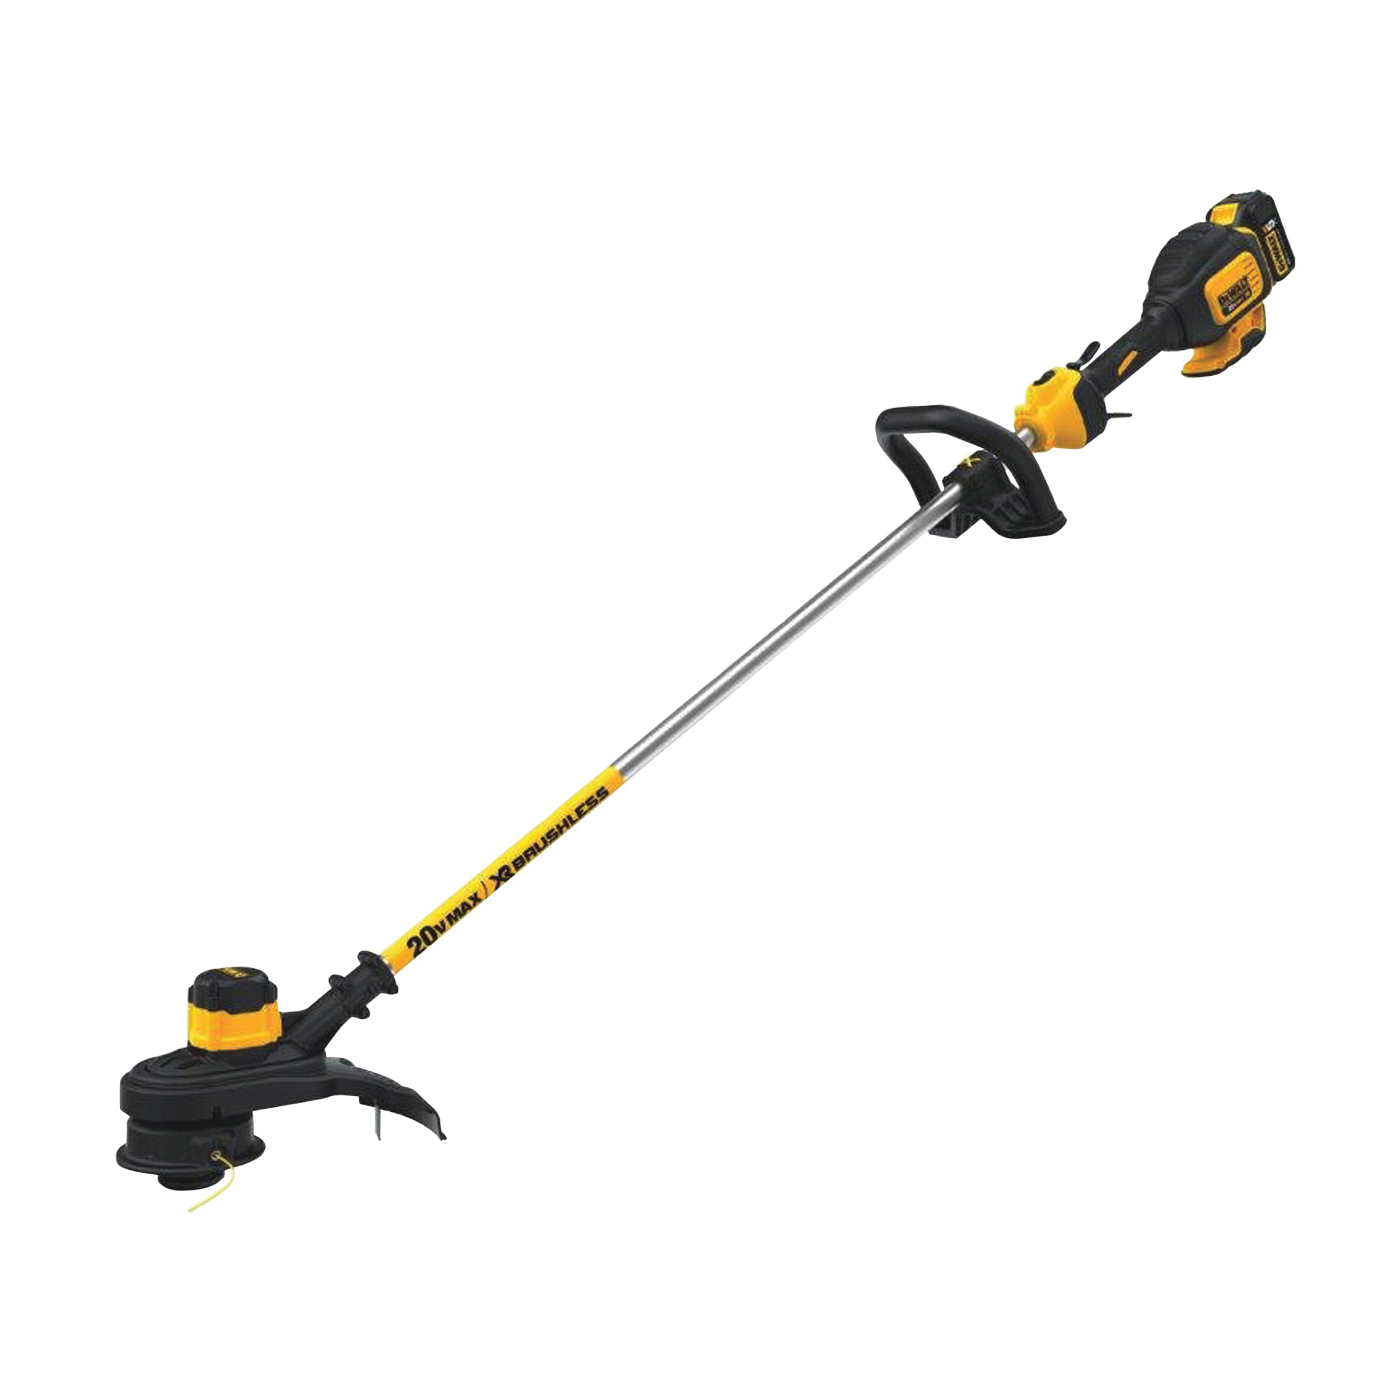 Picture of Black+Decker DCST920P1 String Trimmer, 20 V, 100 W, 48 in L Shaft